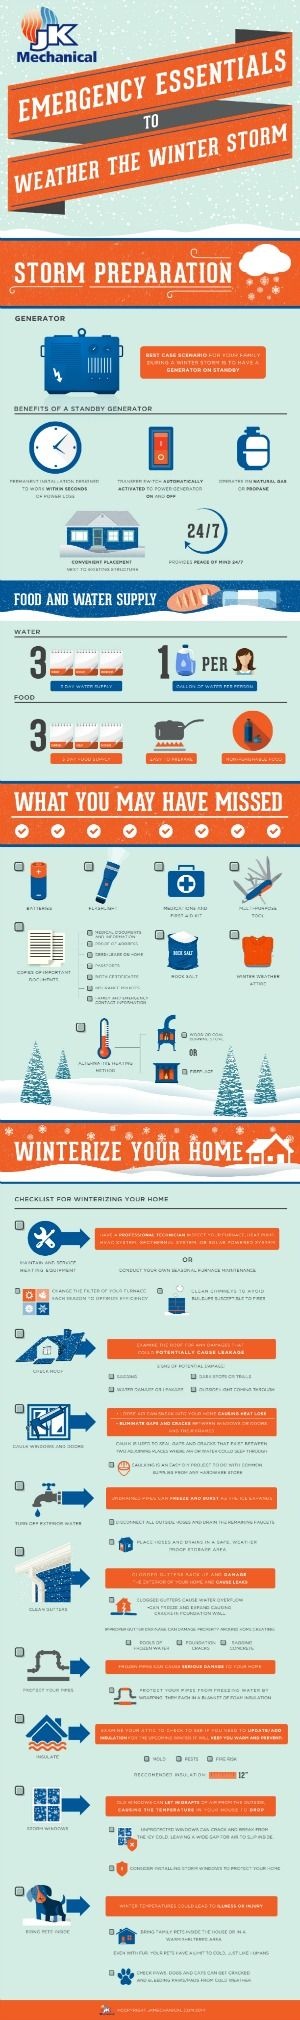 Prepare for the next winter storm before it arrives. Prepare your home for heavy rain, snow, ice and wind with this infographic from JK Mechanical.| PreparednessMama